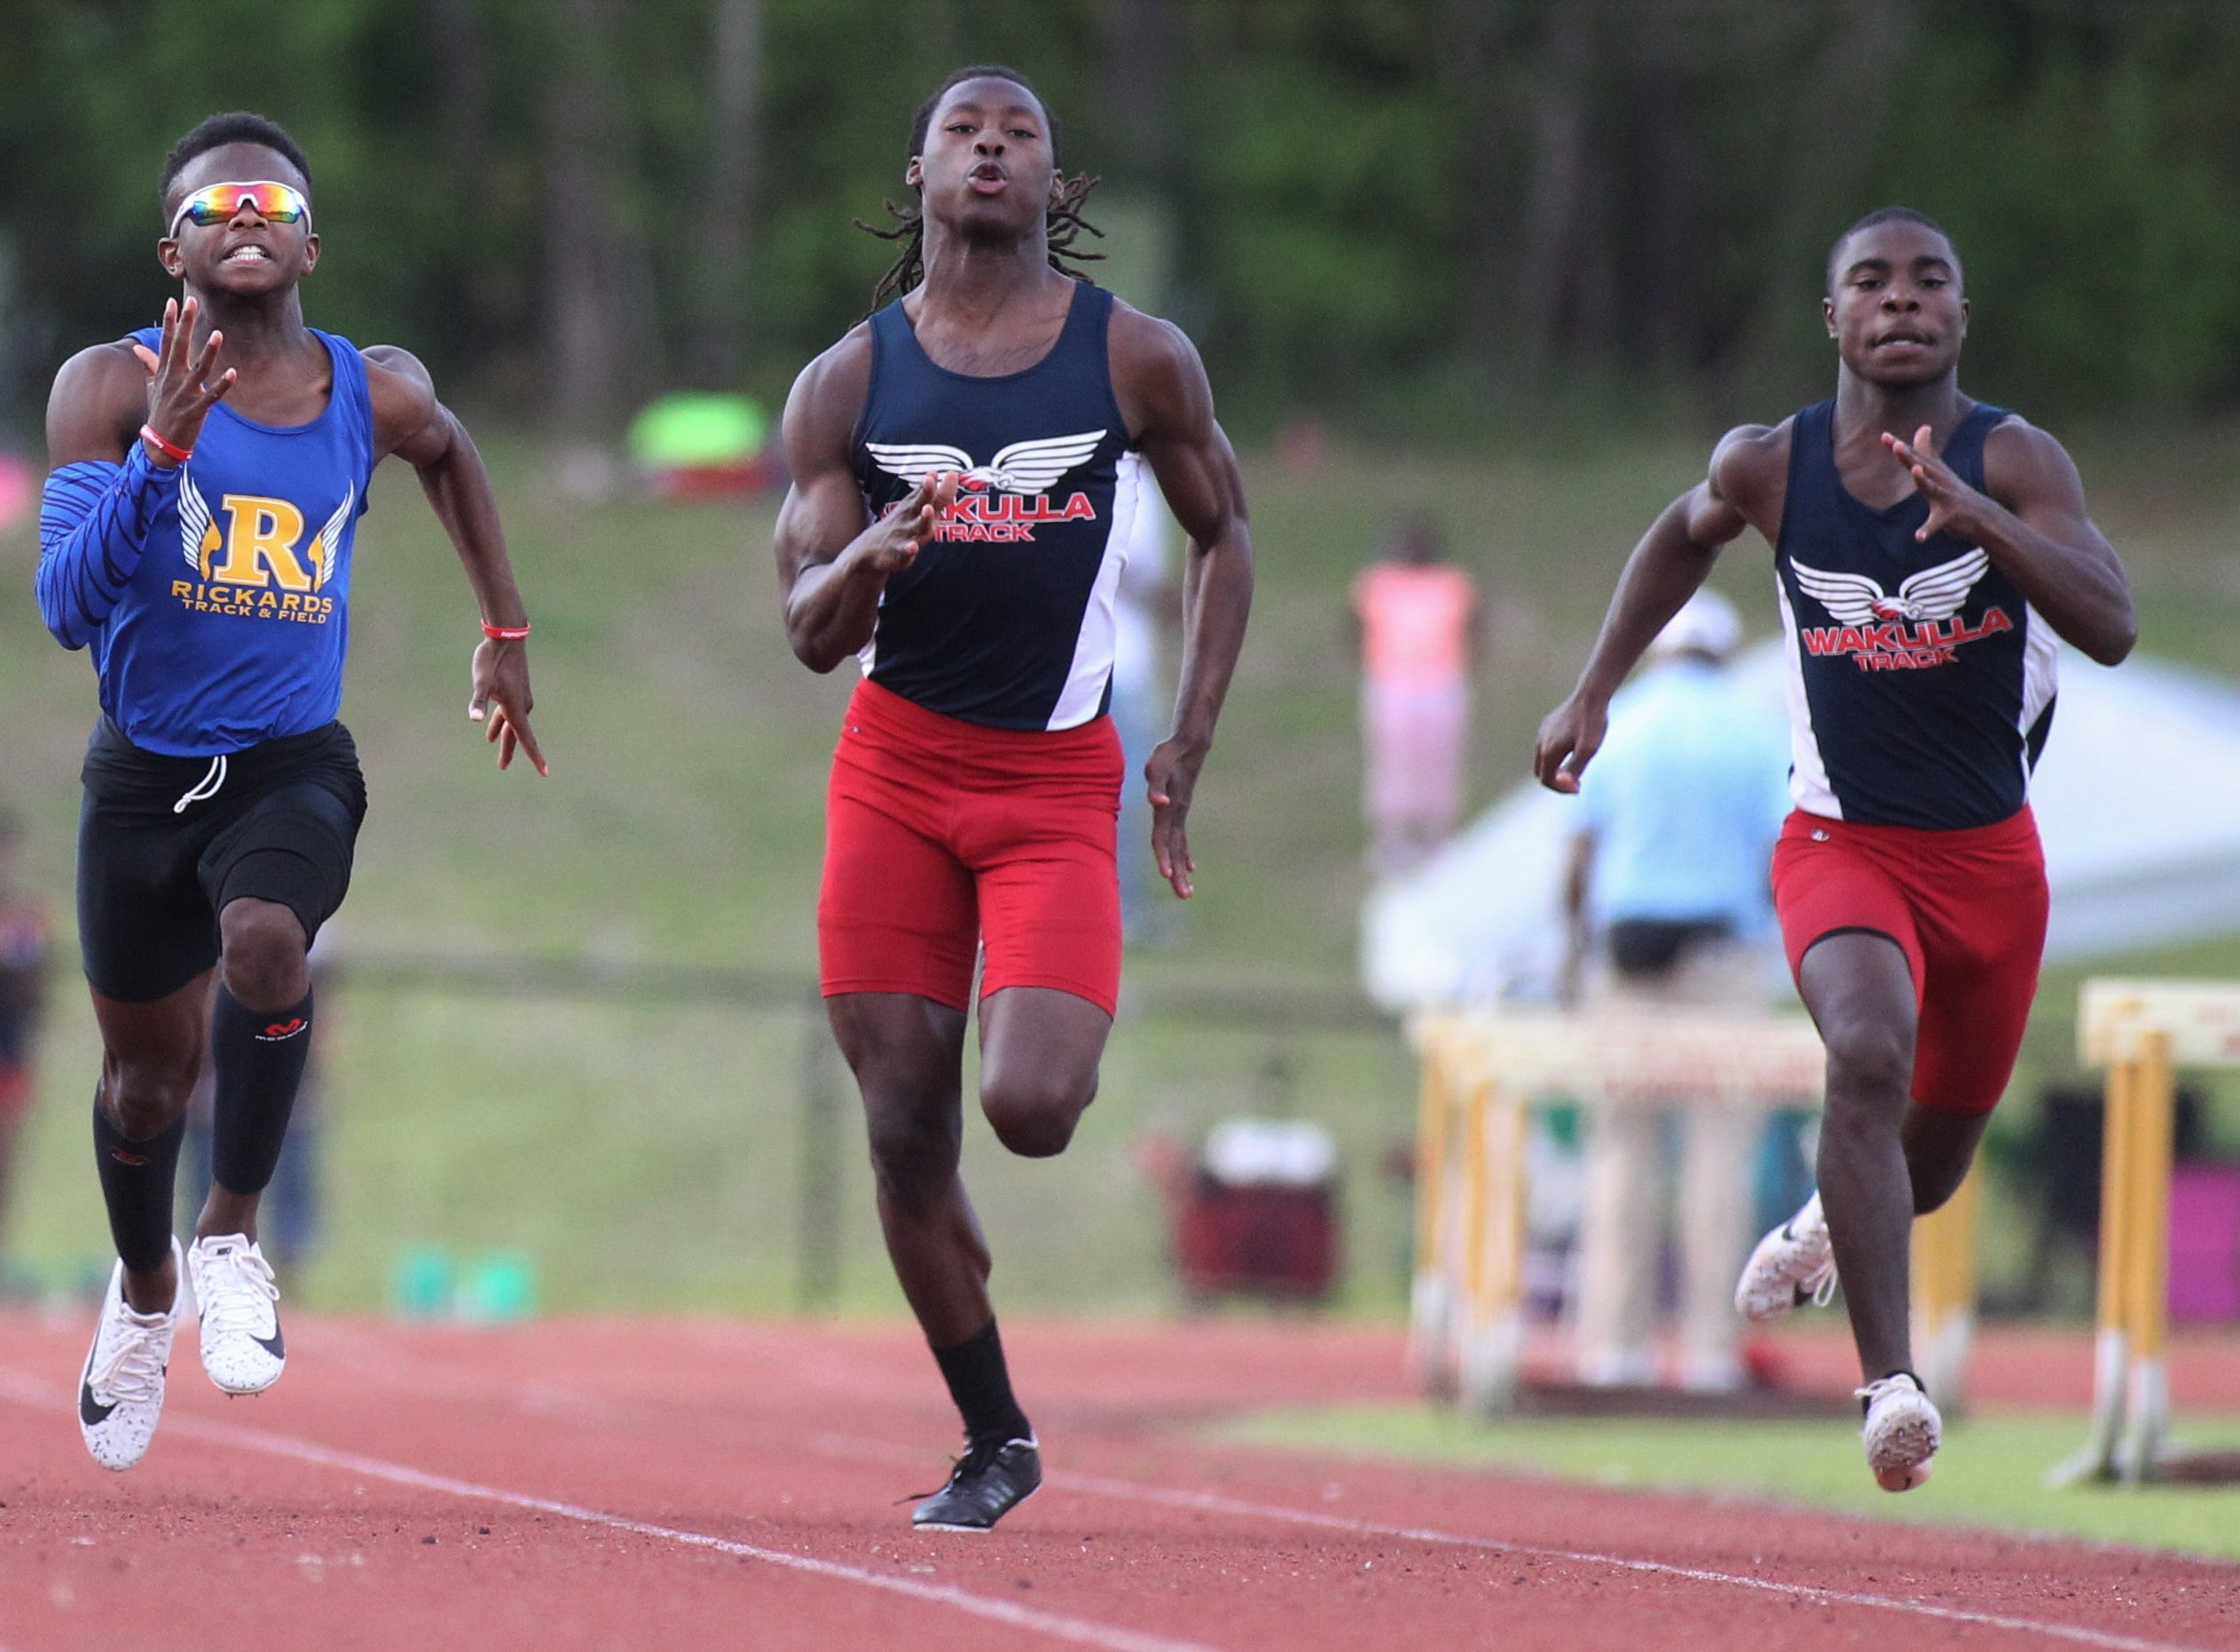 Wakulla's Jaylon Worsham (middle_ sprints the 100-meter dash during District 3-1A and 2-2A track and field meets at Florida High on Saturday, April 13, 2019.